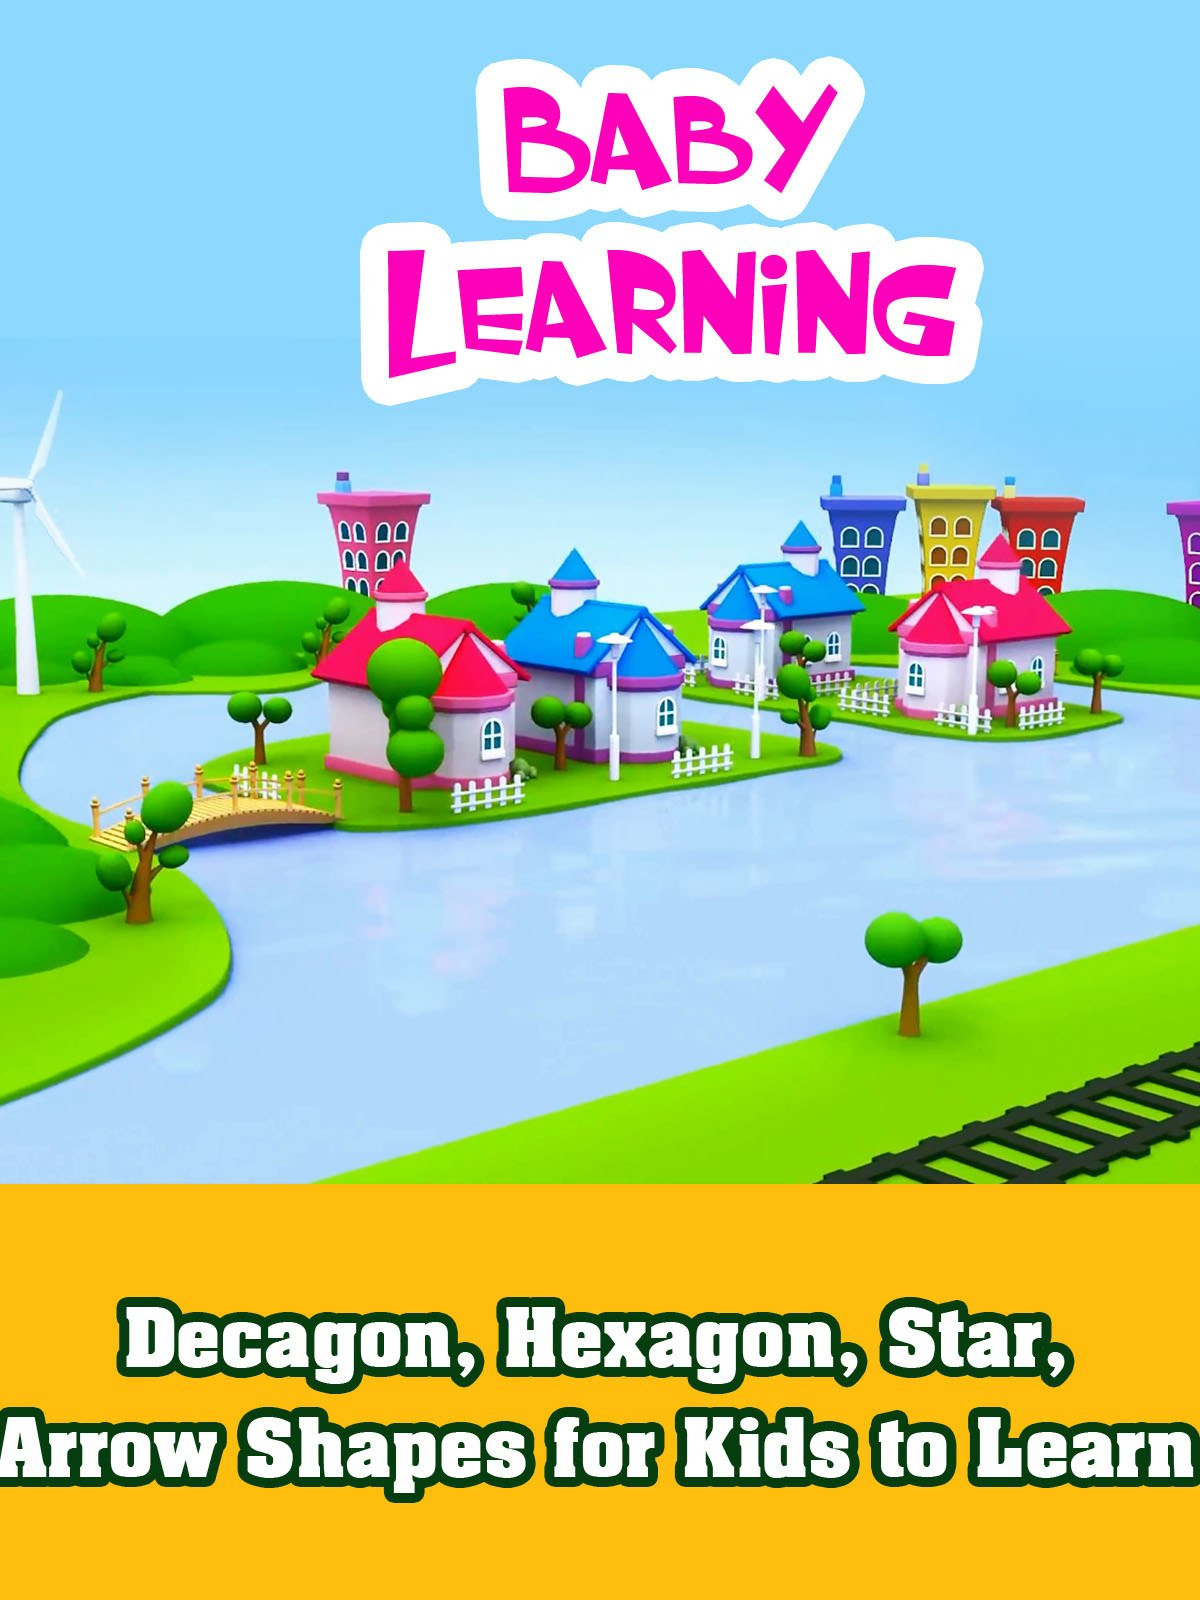 Decagon, Hexagon, Star, Arrow Shapes for Kids to Learn